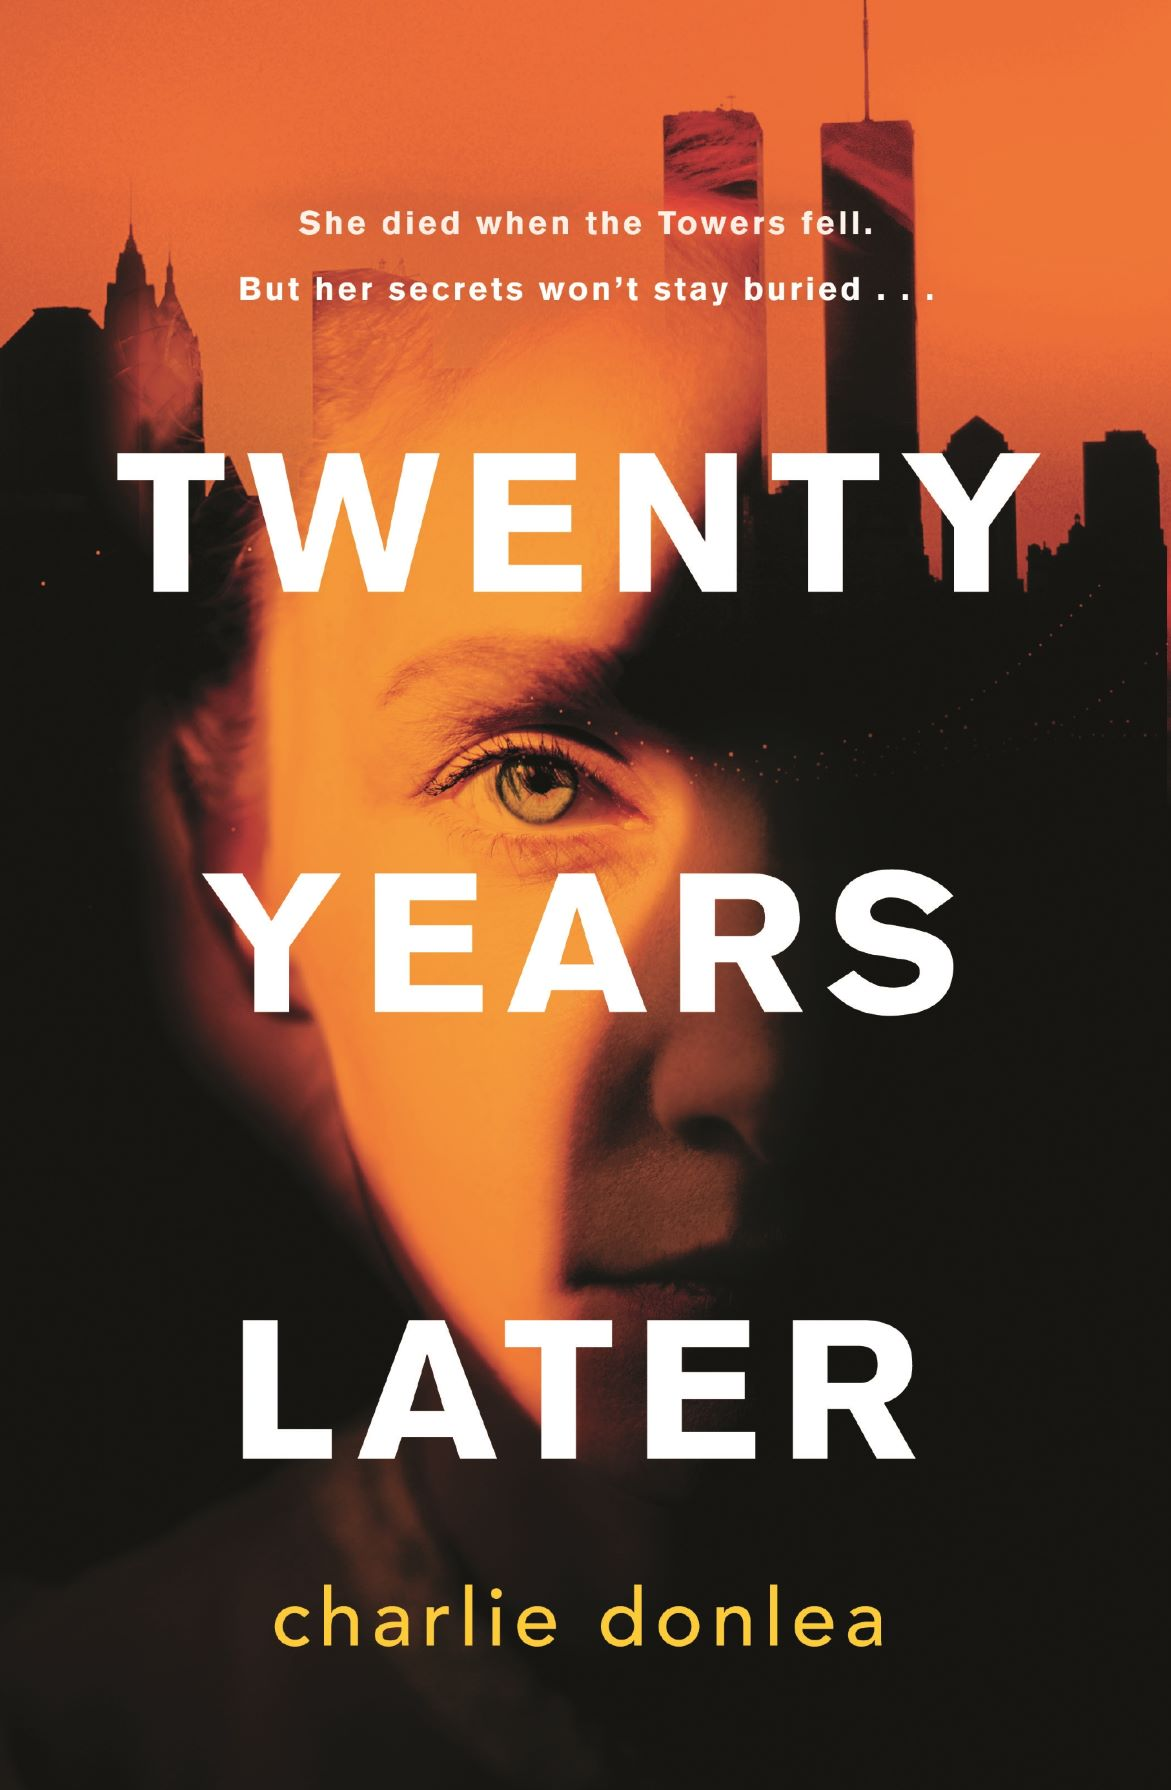 Twenty Years Later by Charlie Donlea